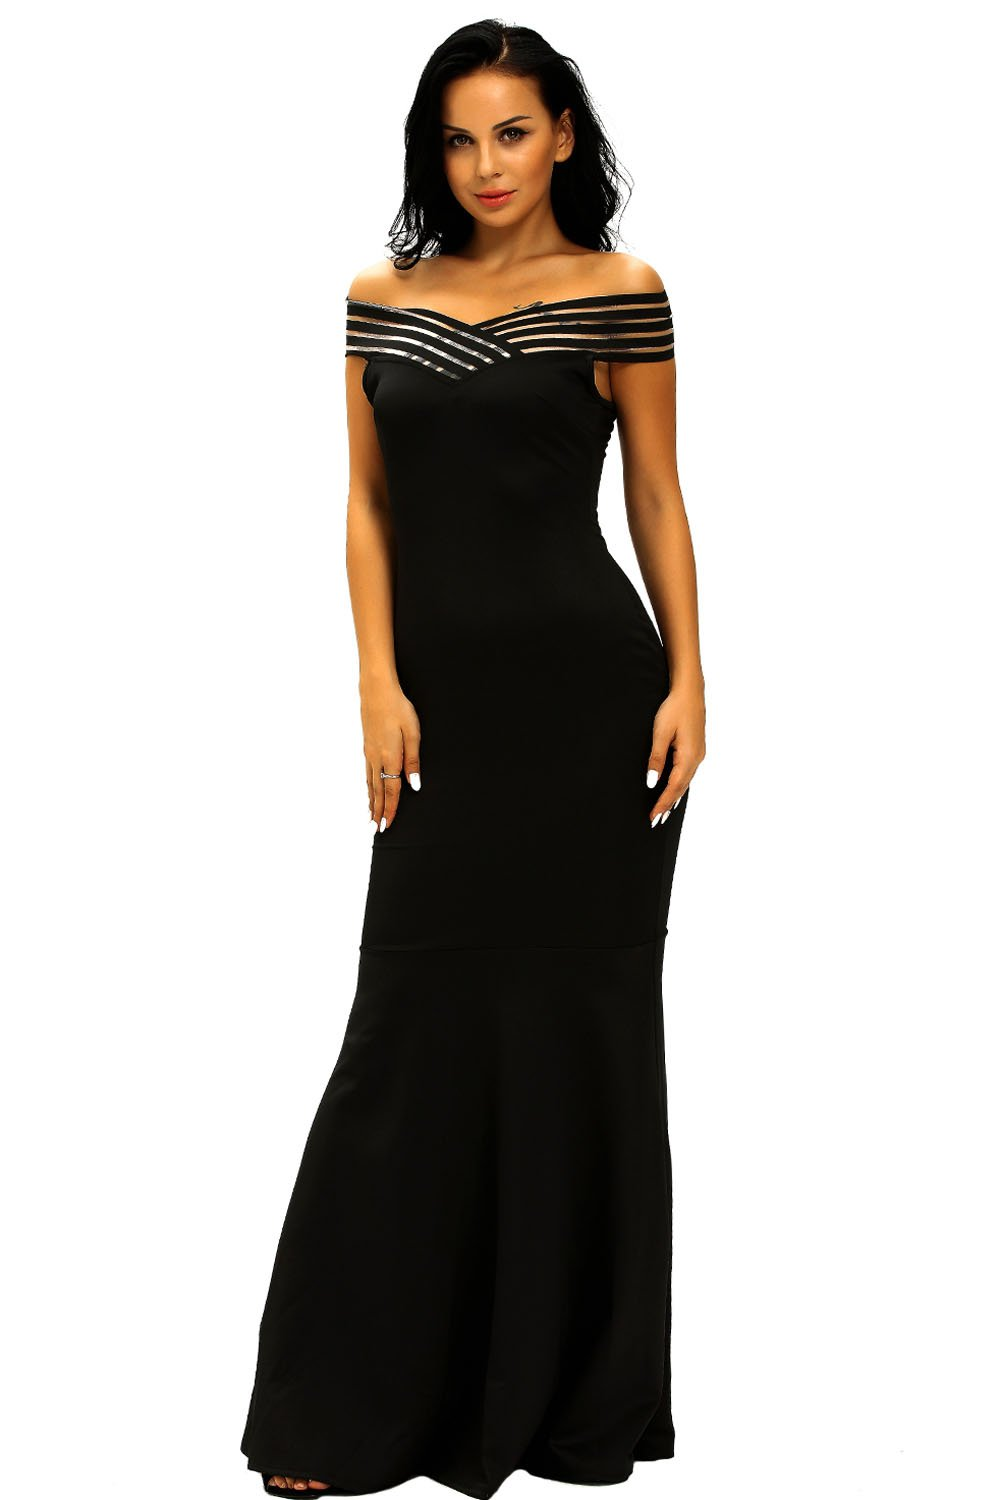 Prime Leader Black Off the Shoulder Sheer Stripe Fishtail Evening Gown For Women at Amazon Womens Clothing store: